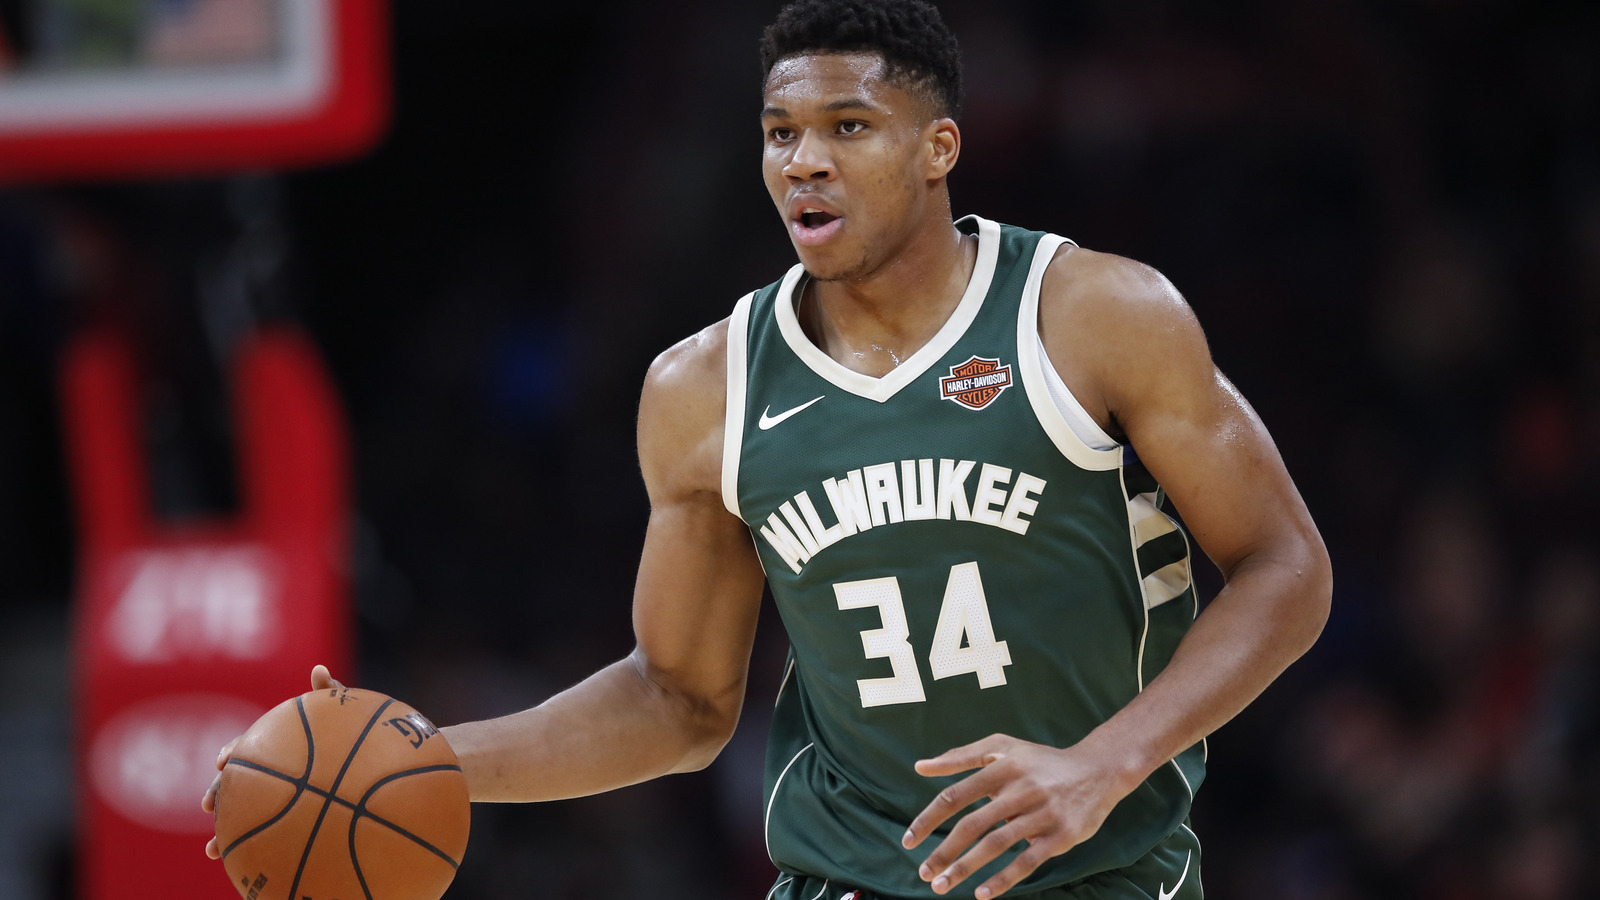 Giannis Antetokounmpo Wallpaper Iphone 6 The Best Hd